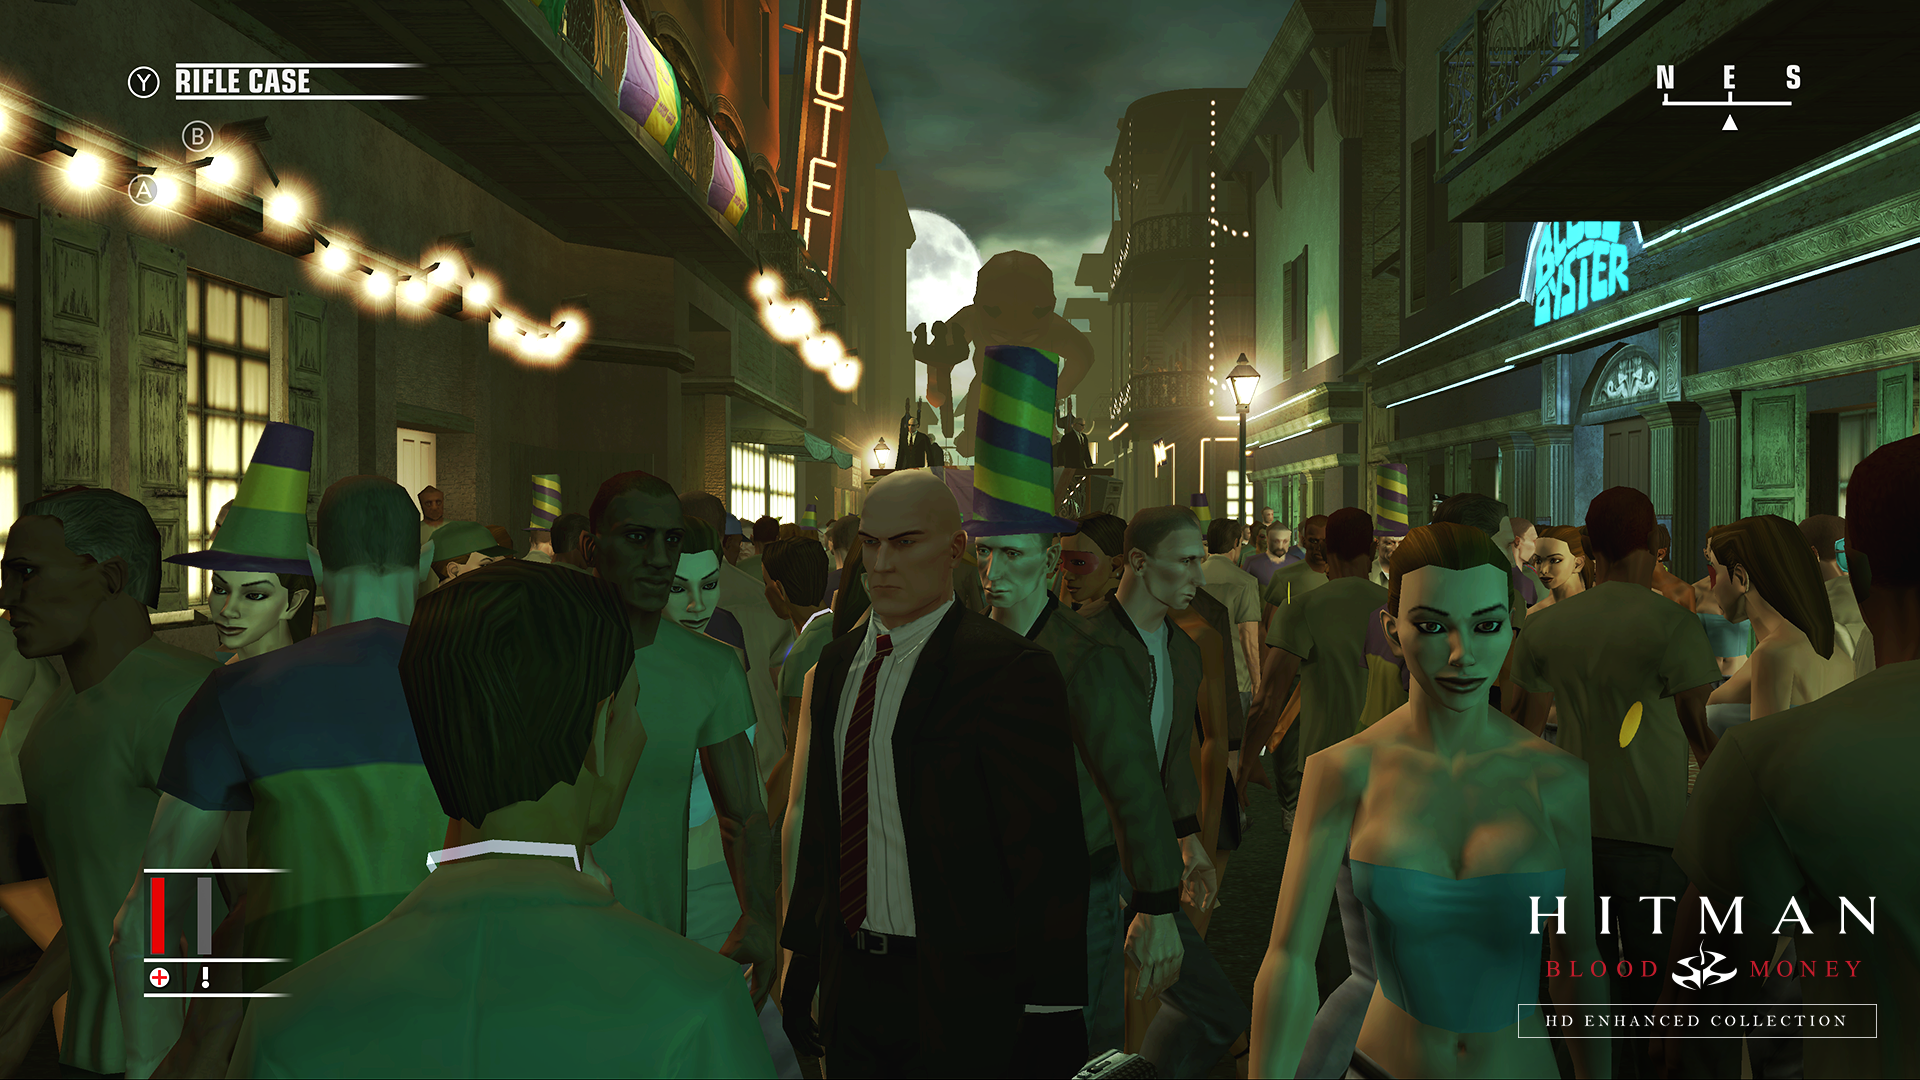 Review Hitman Hd Enhanced Collection By Walter Muller Tasta